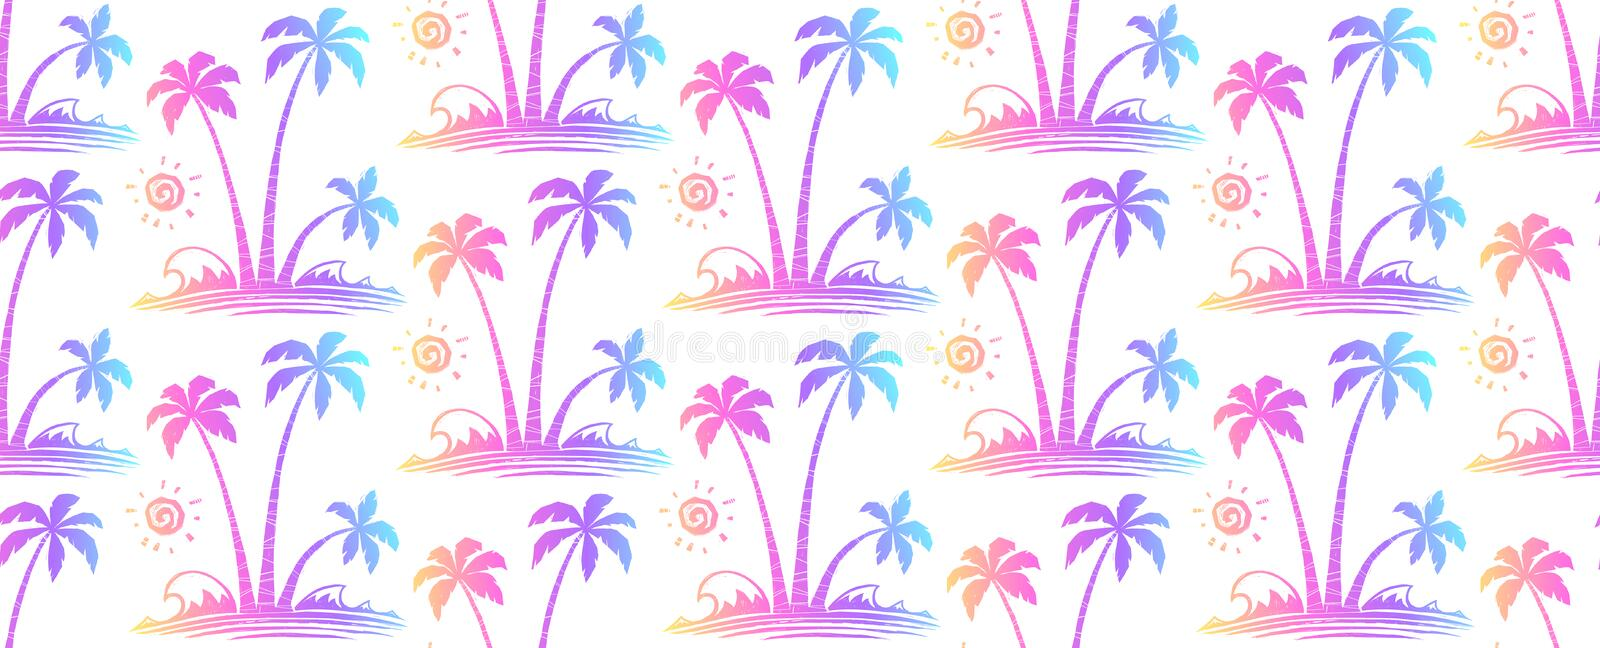 Vivid colors hand drawn tropical palm trees vintage vector seamless pattern.  stock illustration